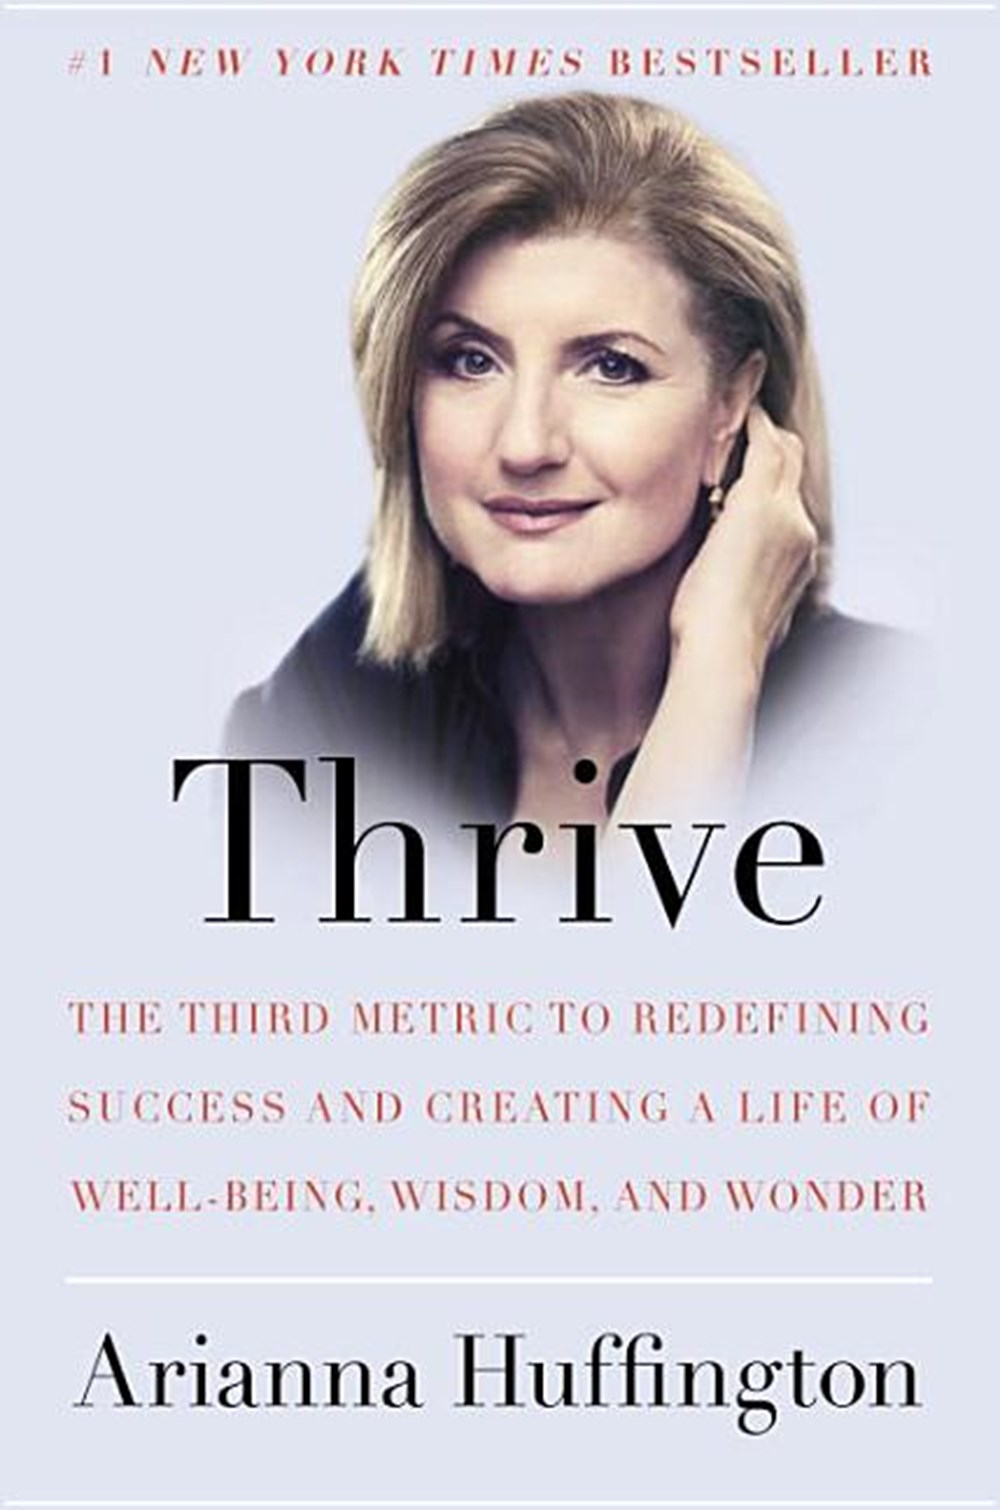 Thrive The Third Metric to Redefining Success and Creating a Life of Well-Being, Wisdom, and Wonder